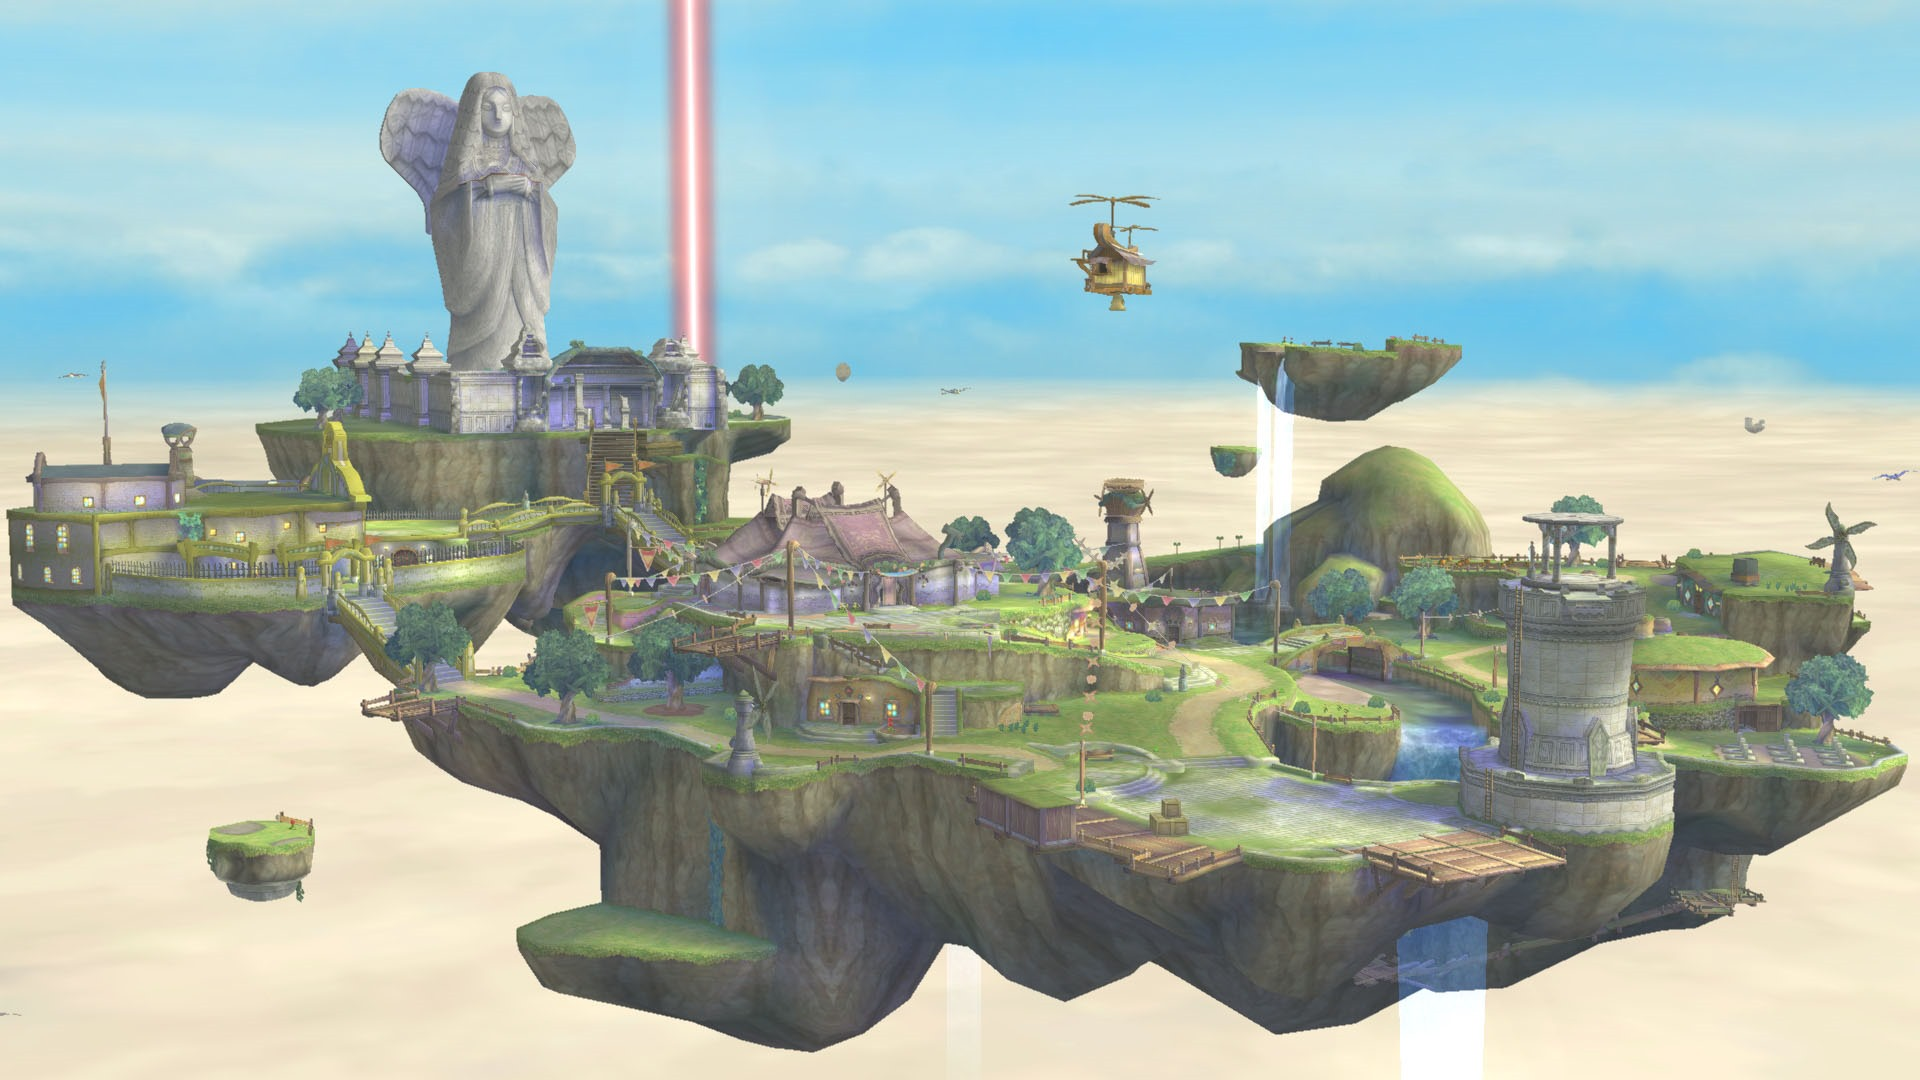 Cities in the Sky: Awe-Inspiring Floating Cities in The Legend of Zelda and Beyond